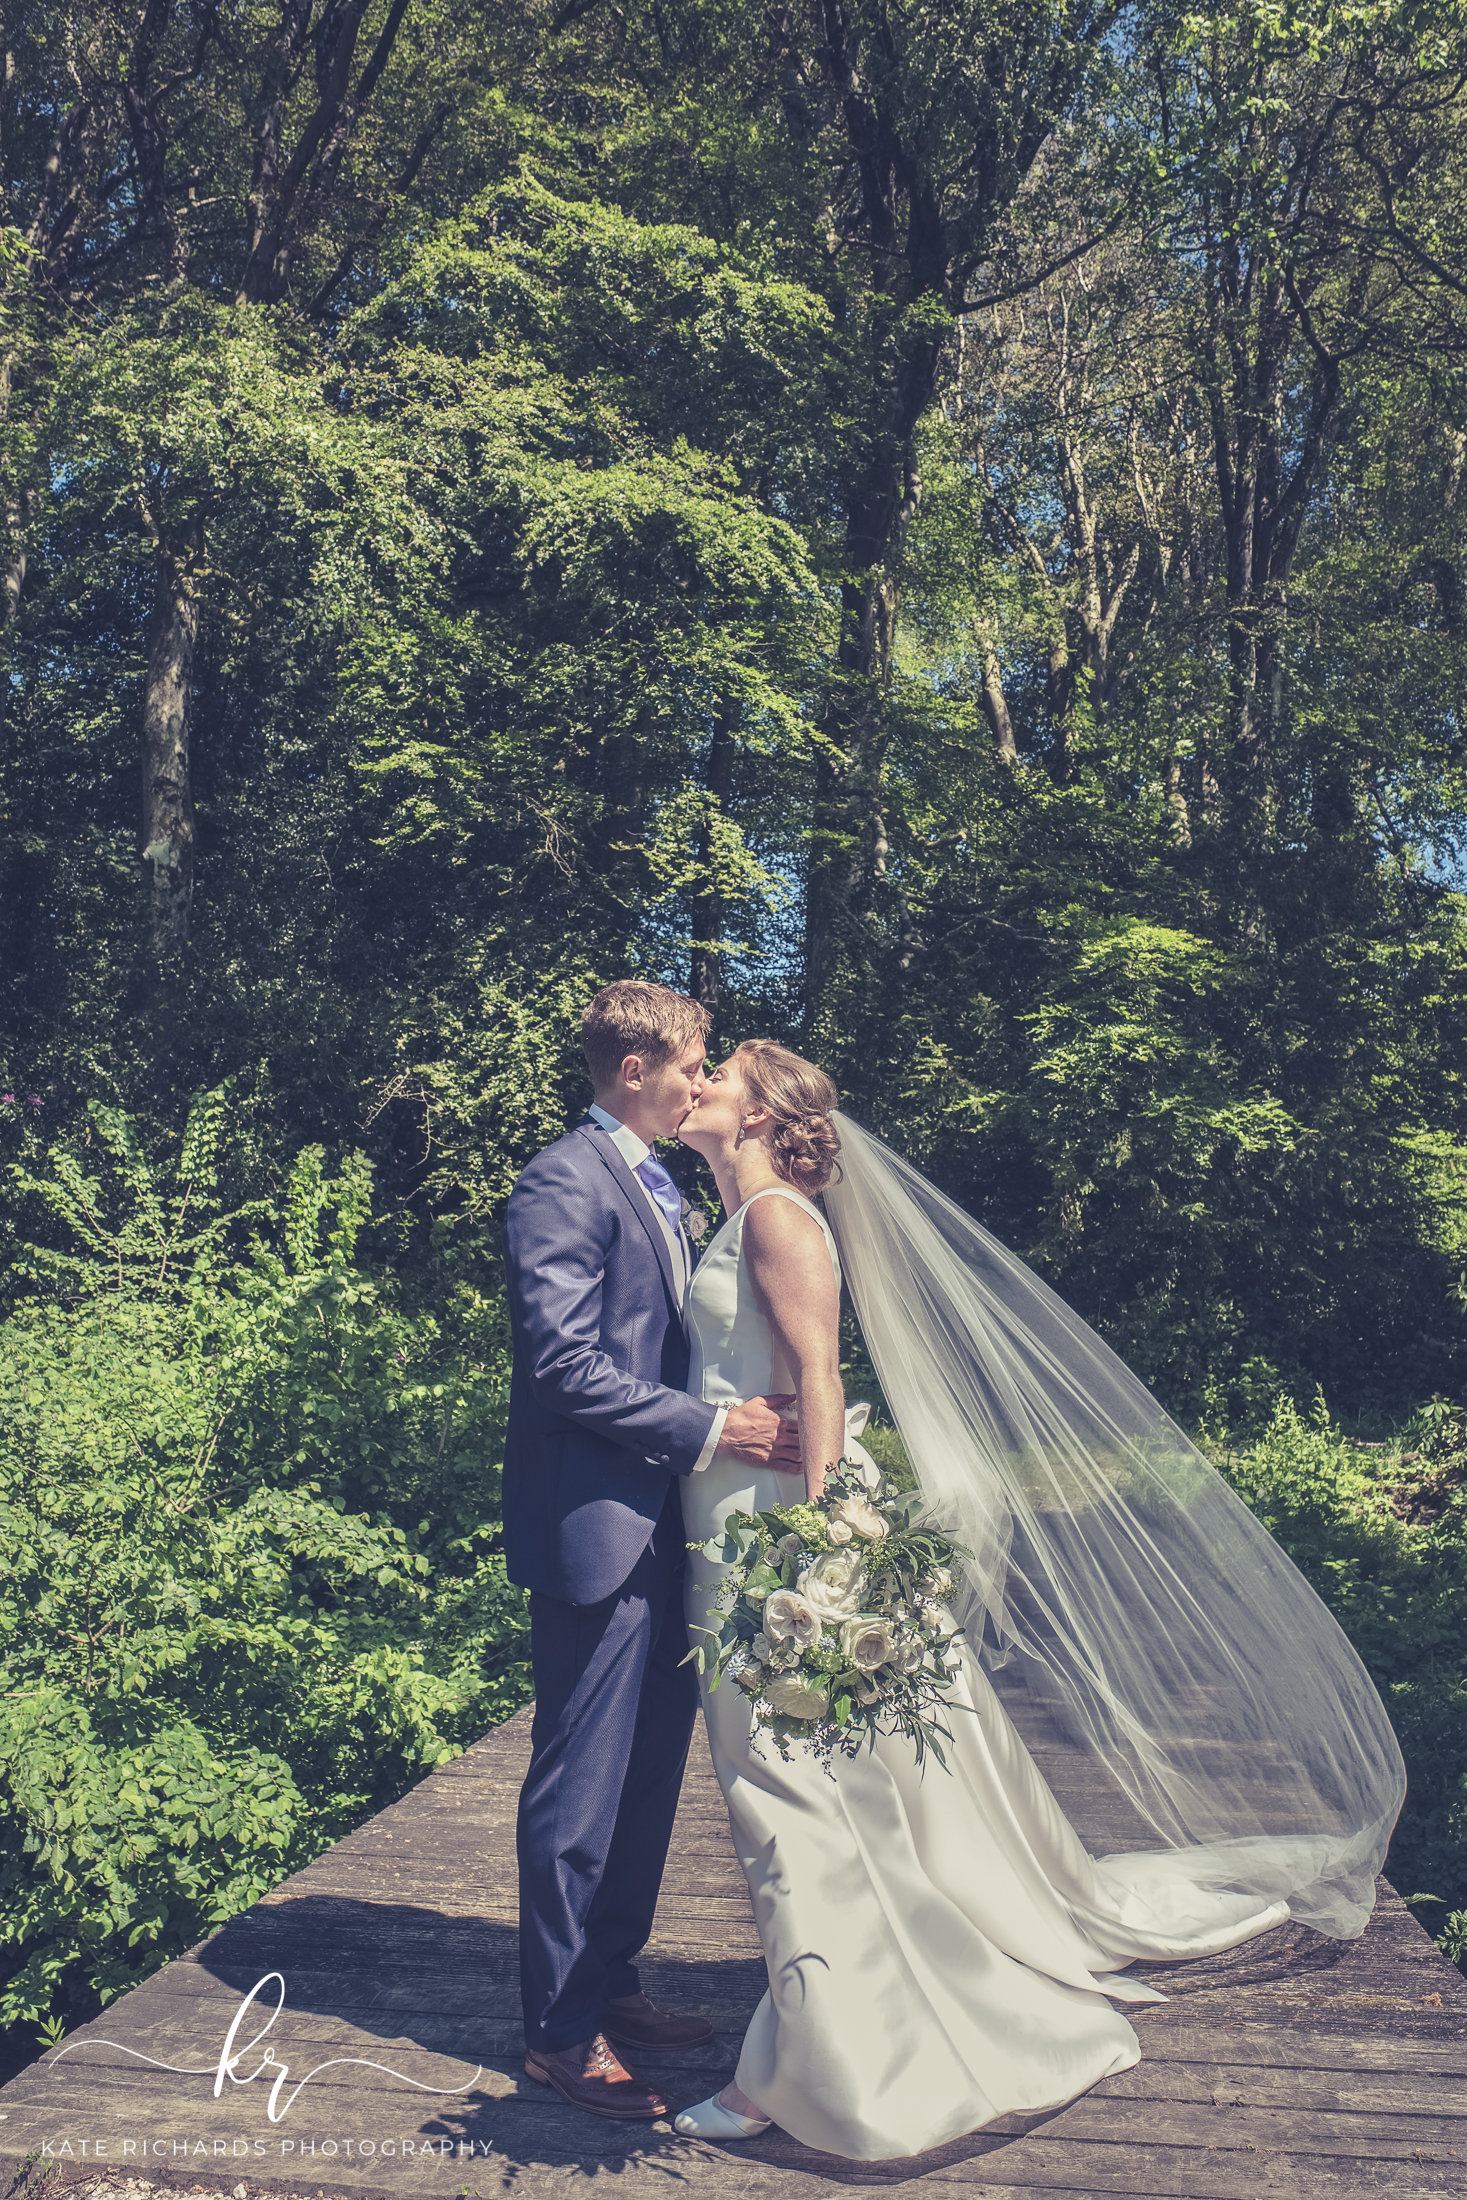 Sian and Huw's Fairytale Wedding